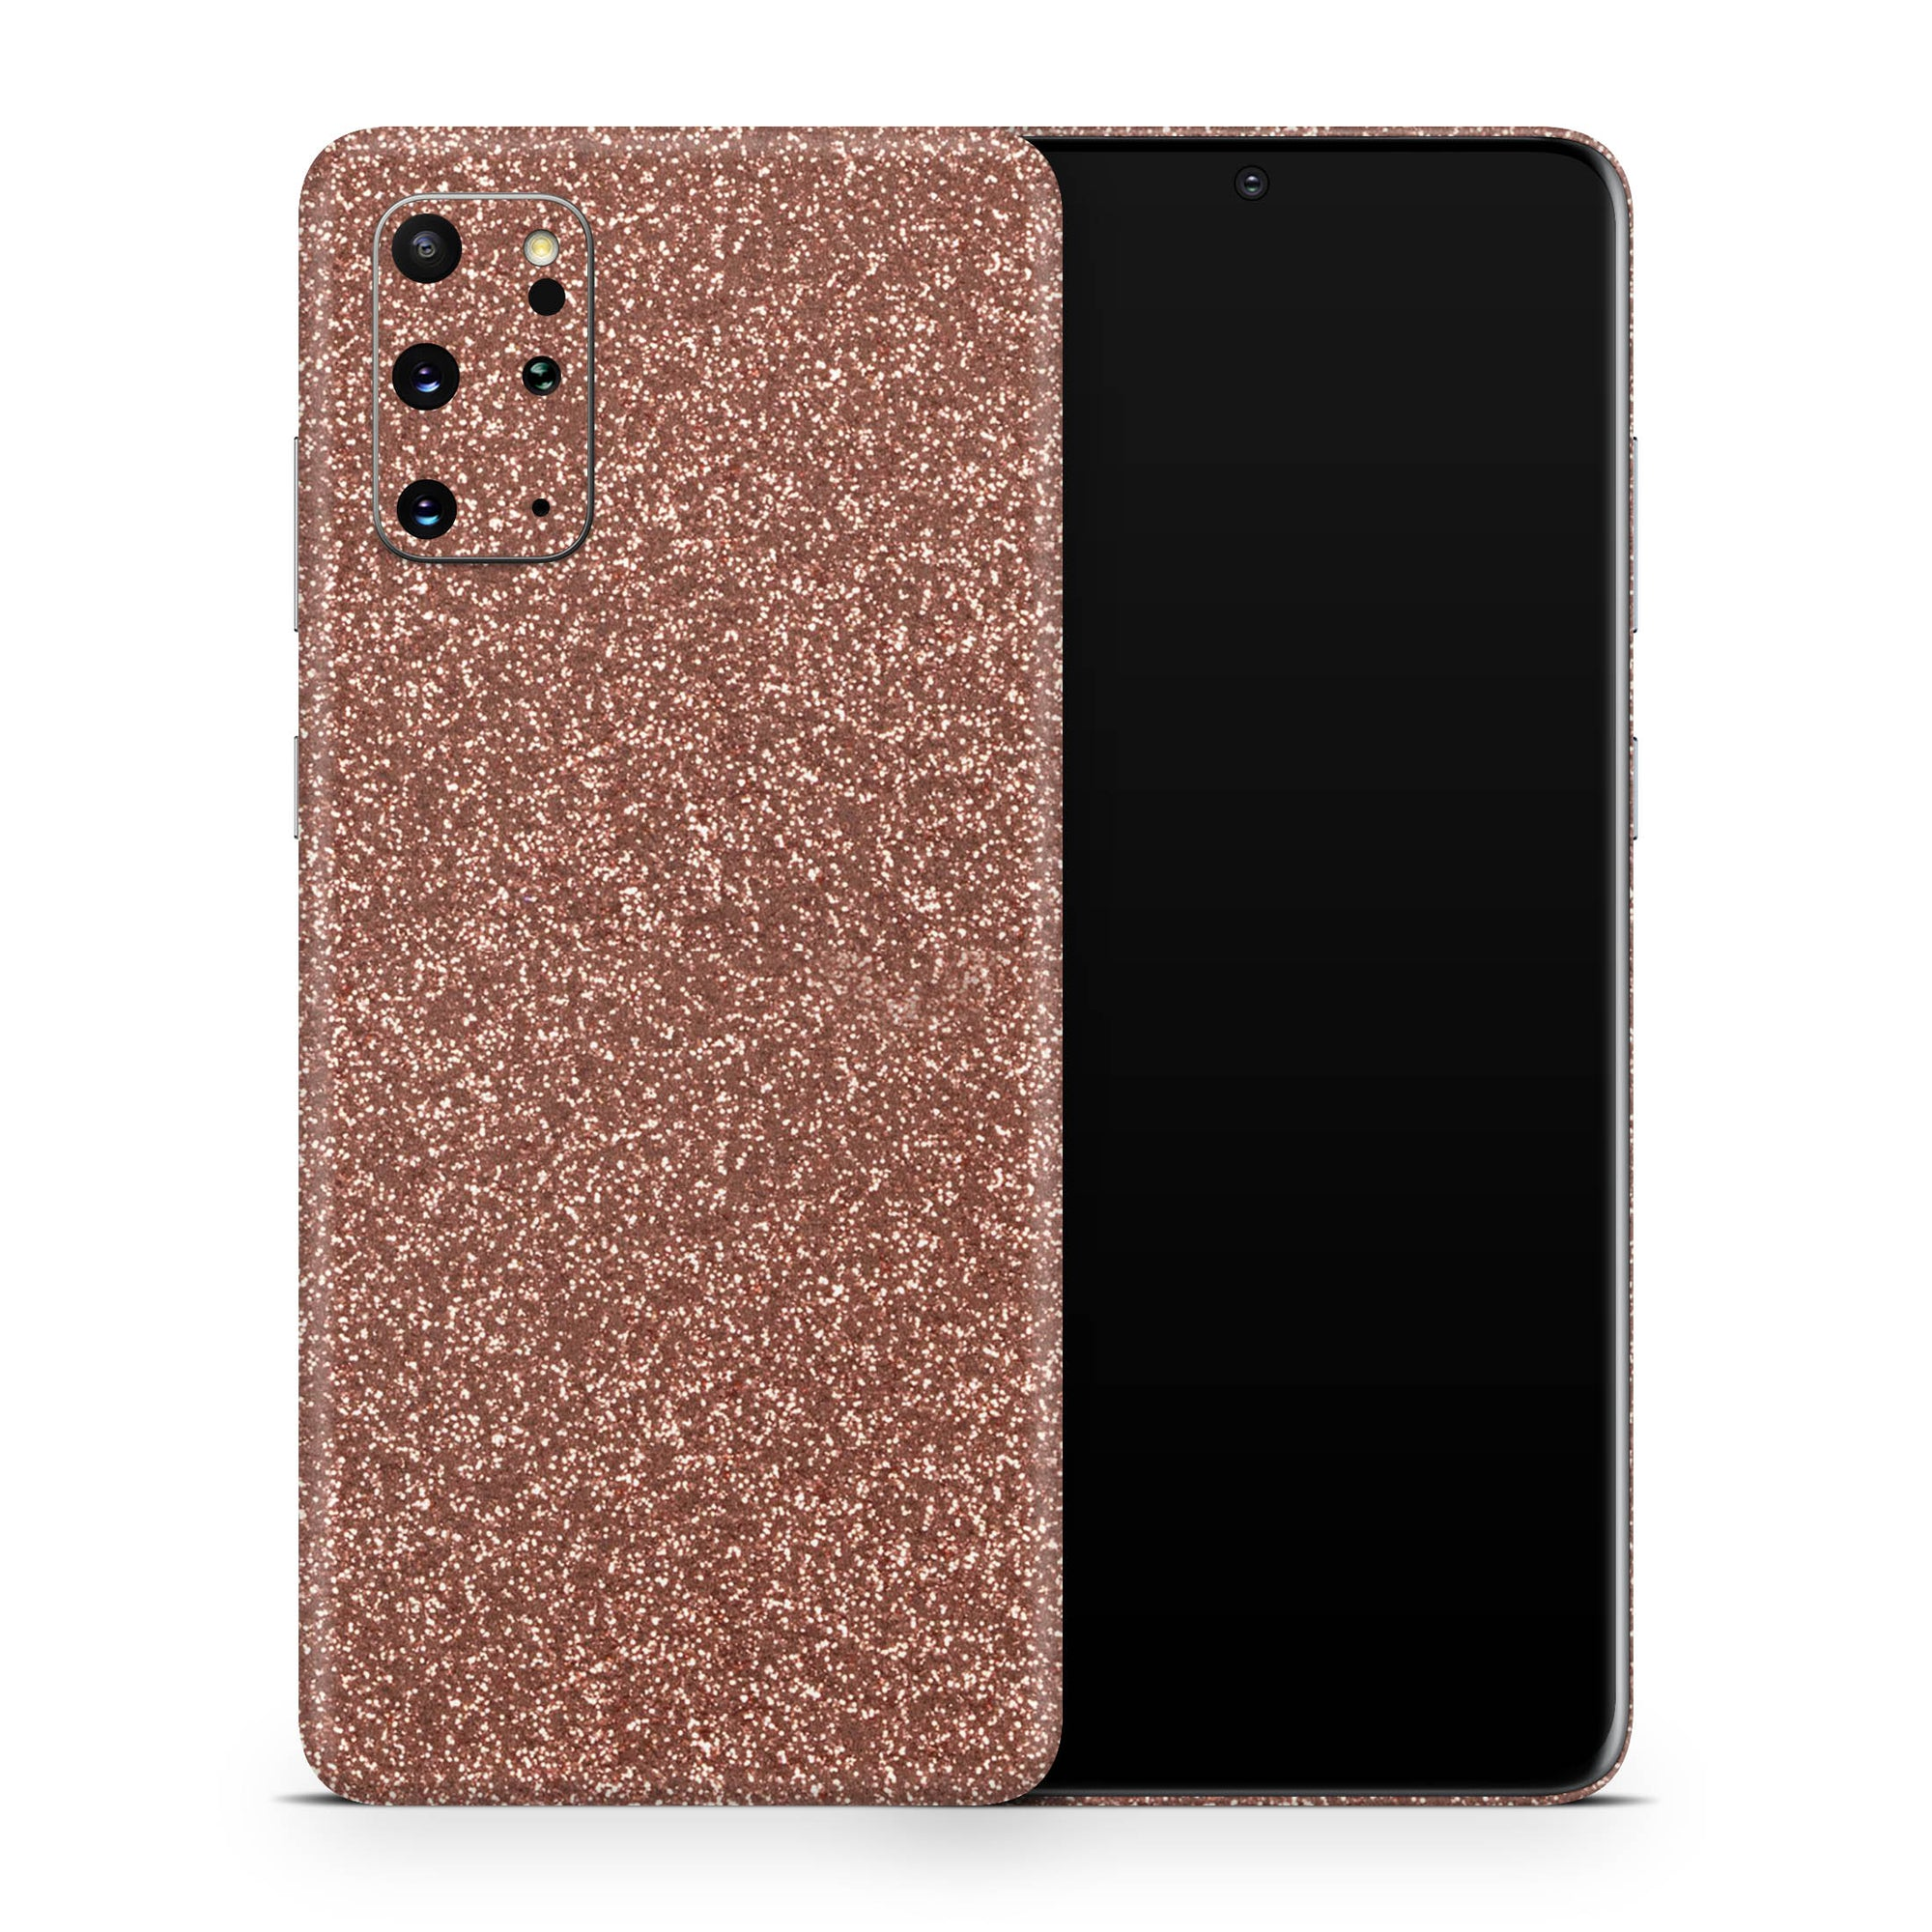 Rosé Glitter Galaxy S20 Plus Skin + Case-Uniqfind